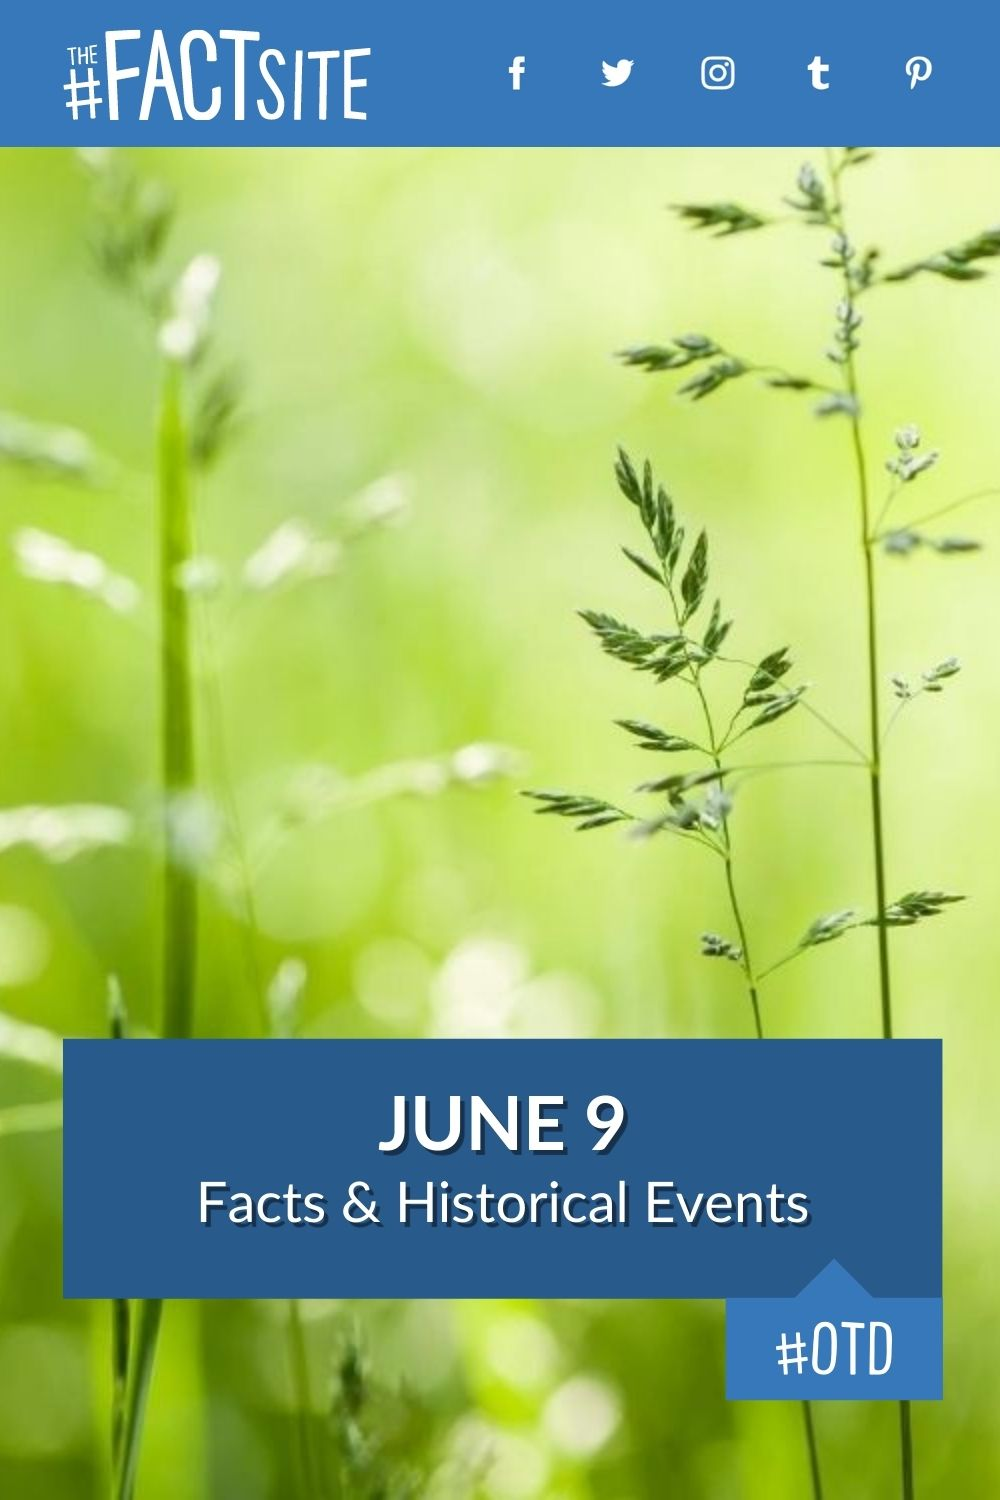 Facts & Historic Events That Happened on June 9